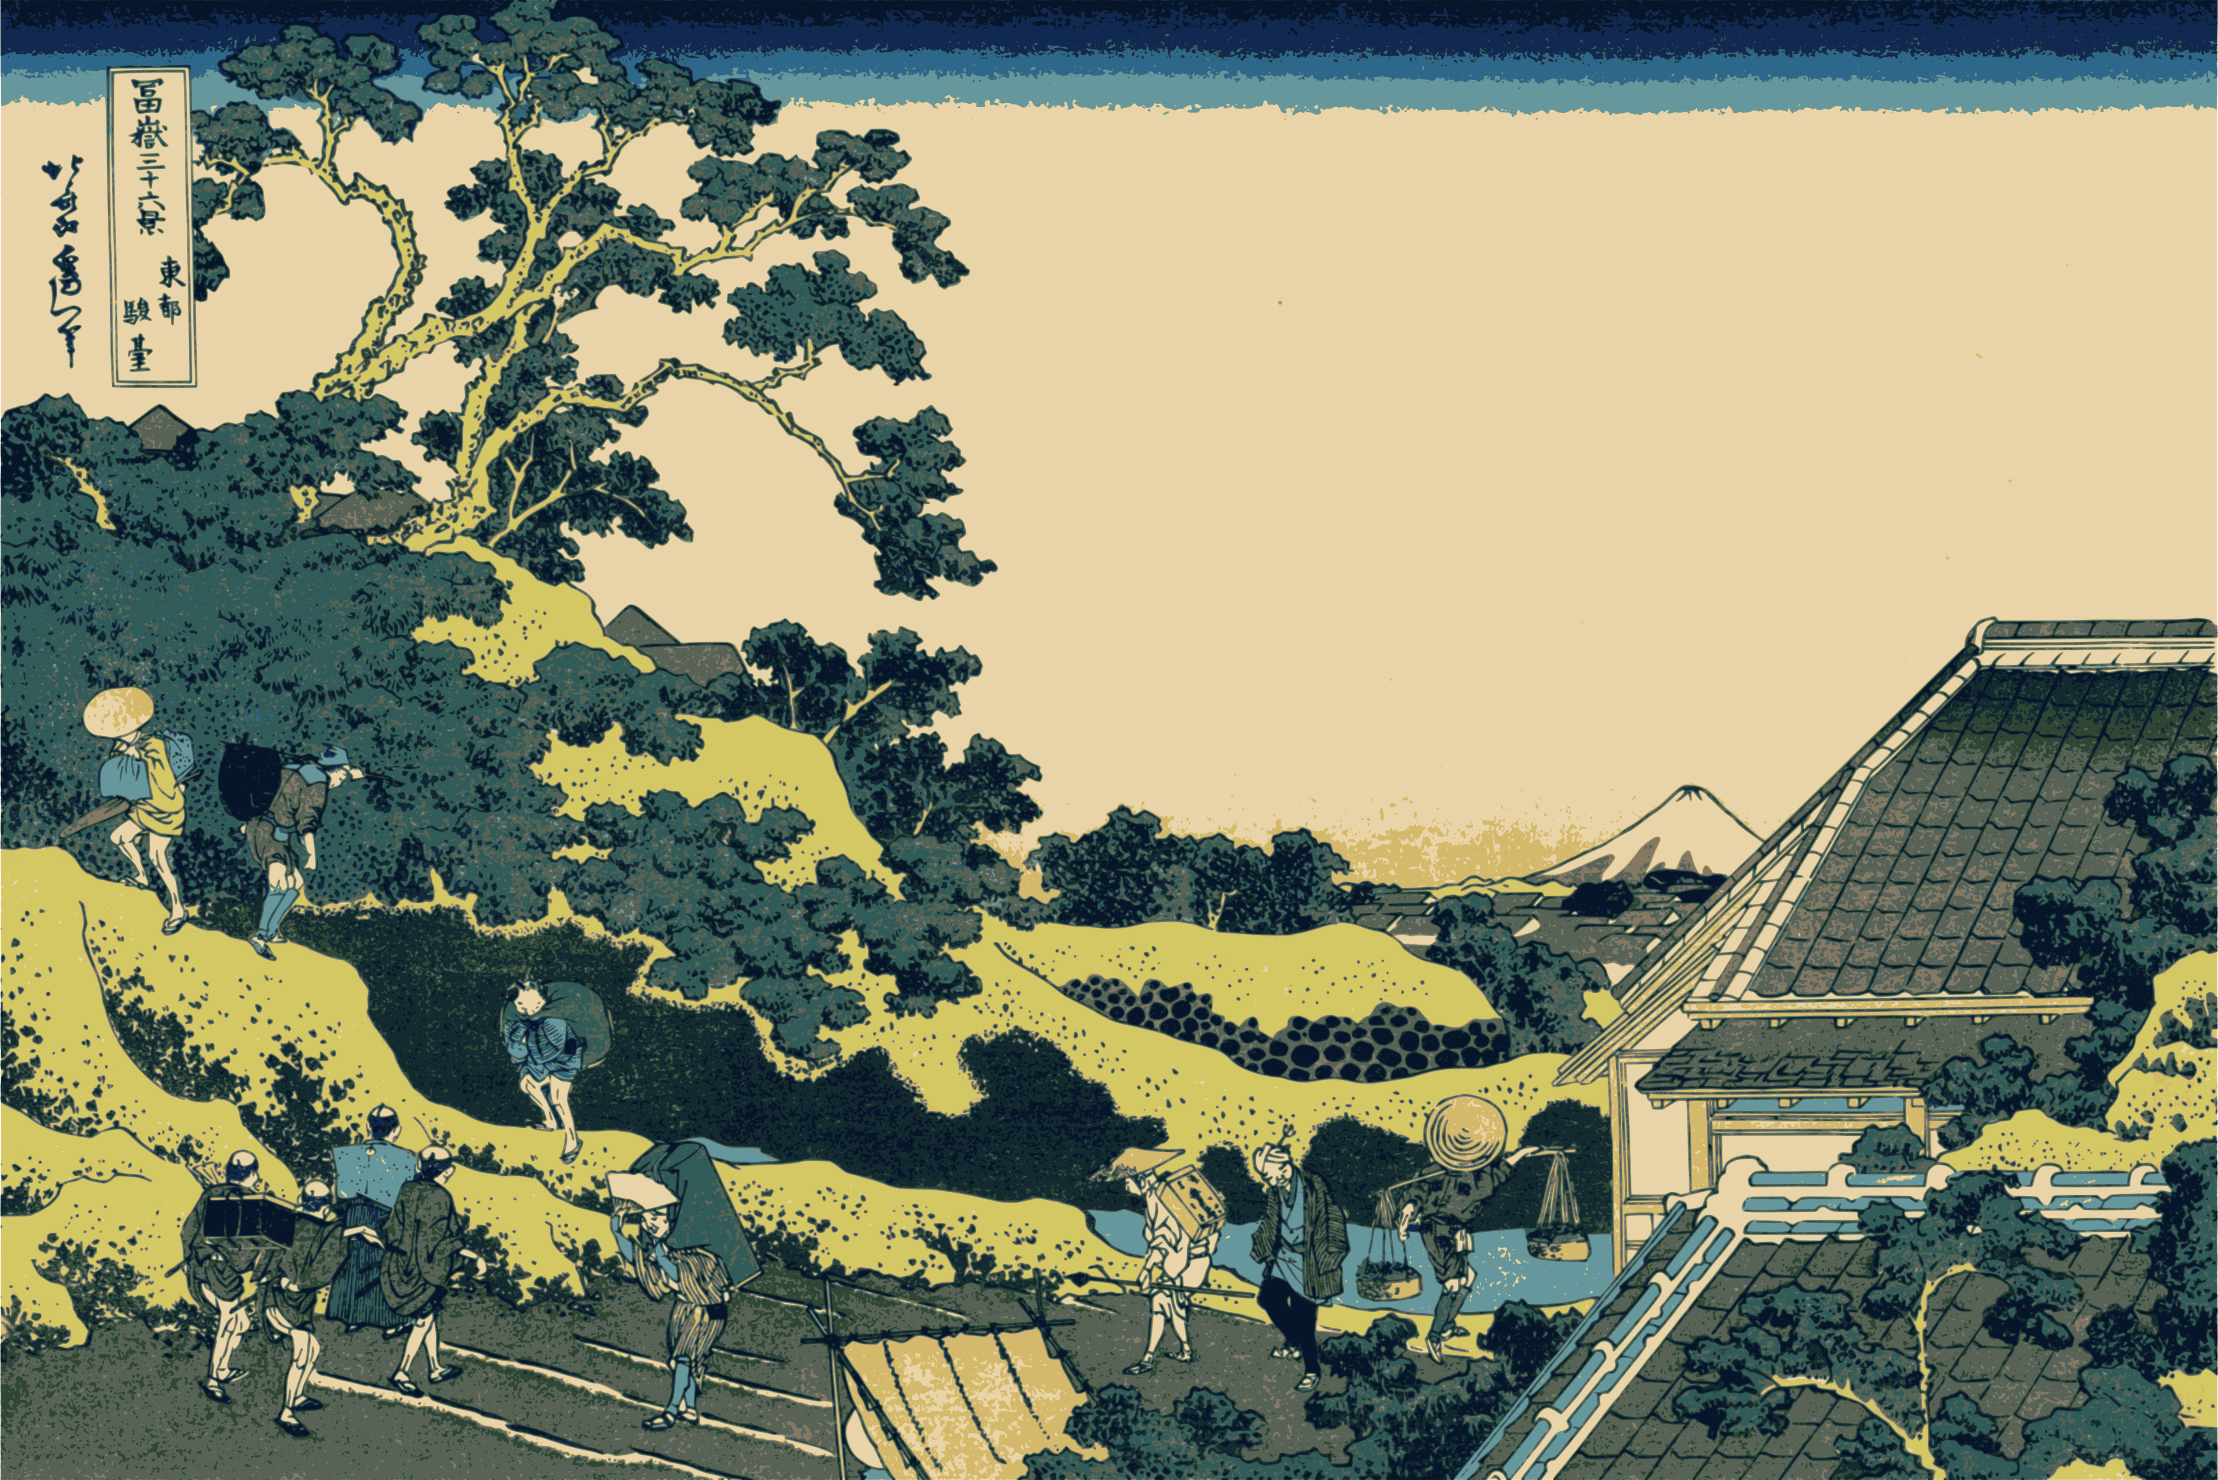 Hokusai-Mount Fuji-36-Views-03 by yamachem2